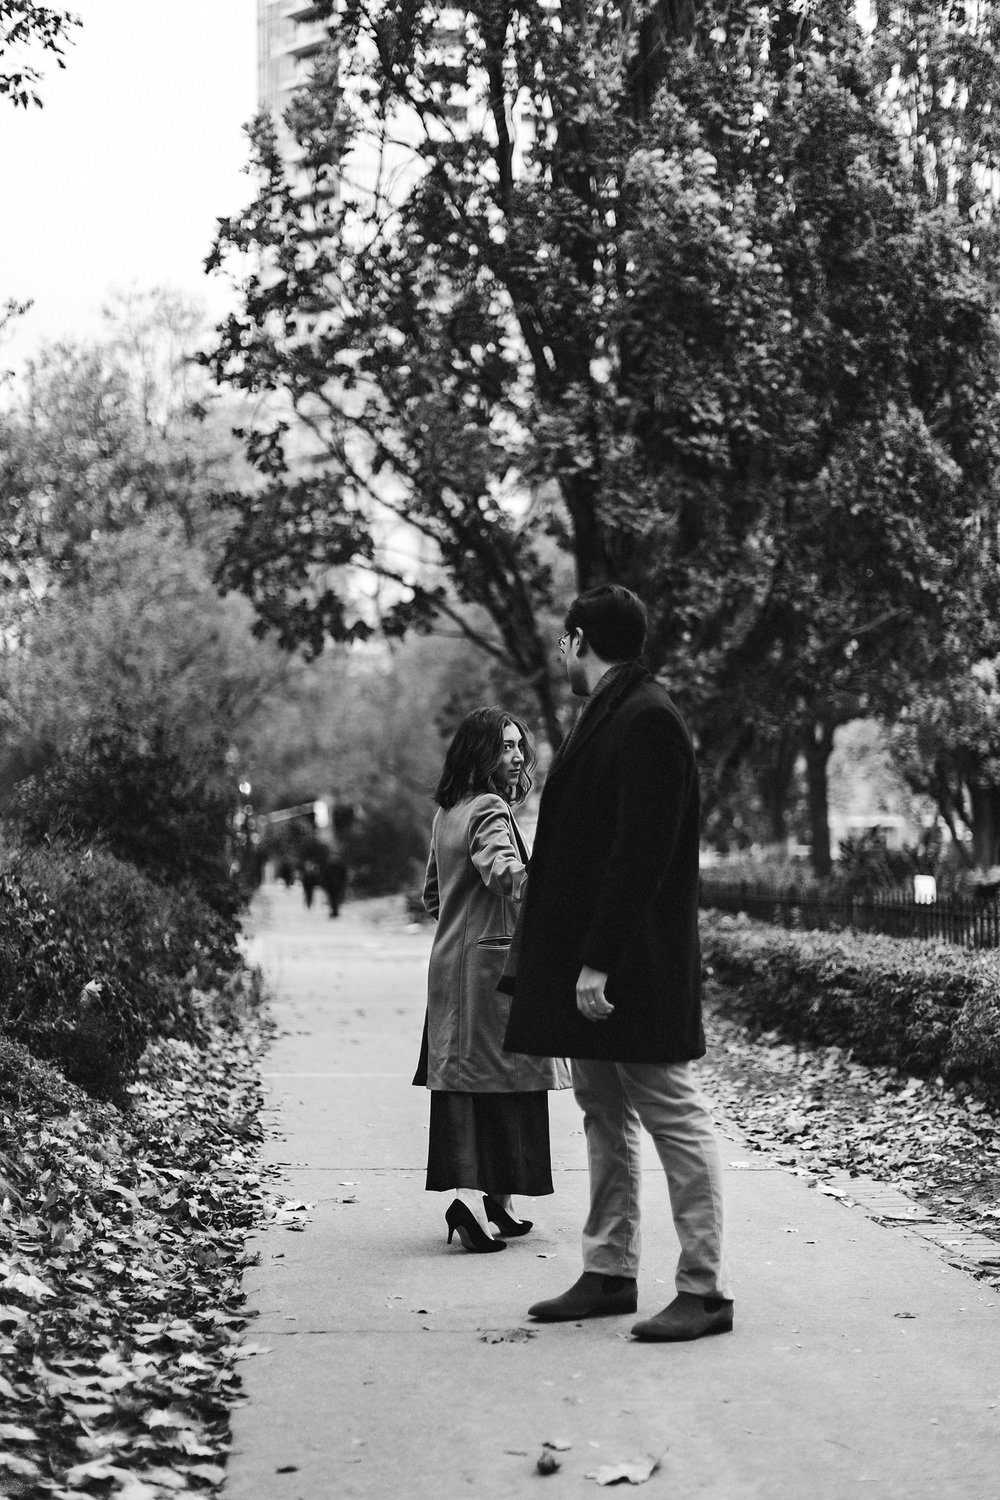 toronto's-alternative-engagement-photographer-lifestyle-session-ryanne-hollies-photography-best-toronto-wedding-photographer-downtown-toronto-st-james-park-editorial-high-fashion-shoot-nordstorms-TO-vogue-couples-session.jpg